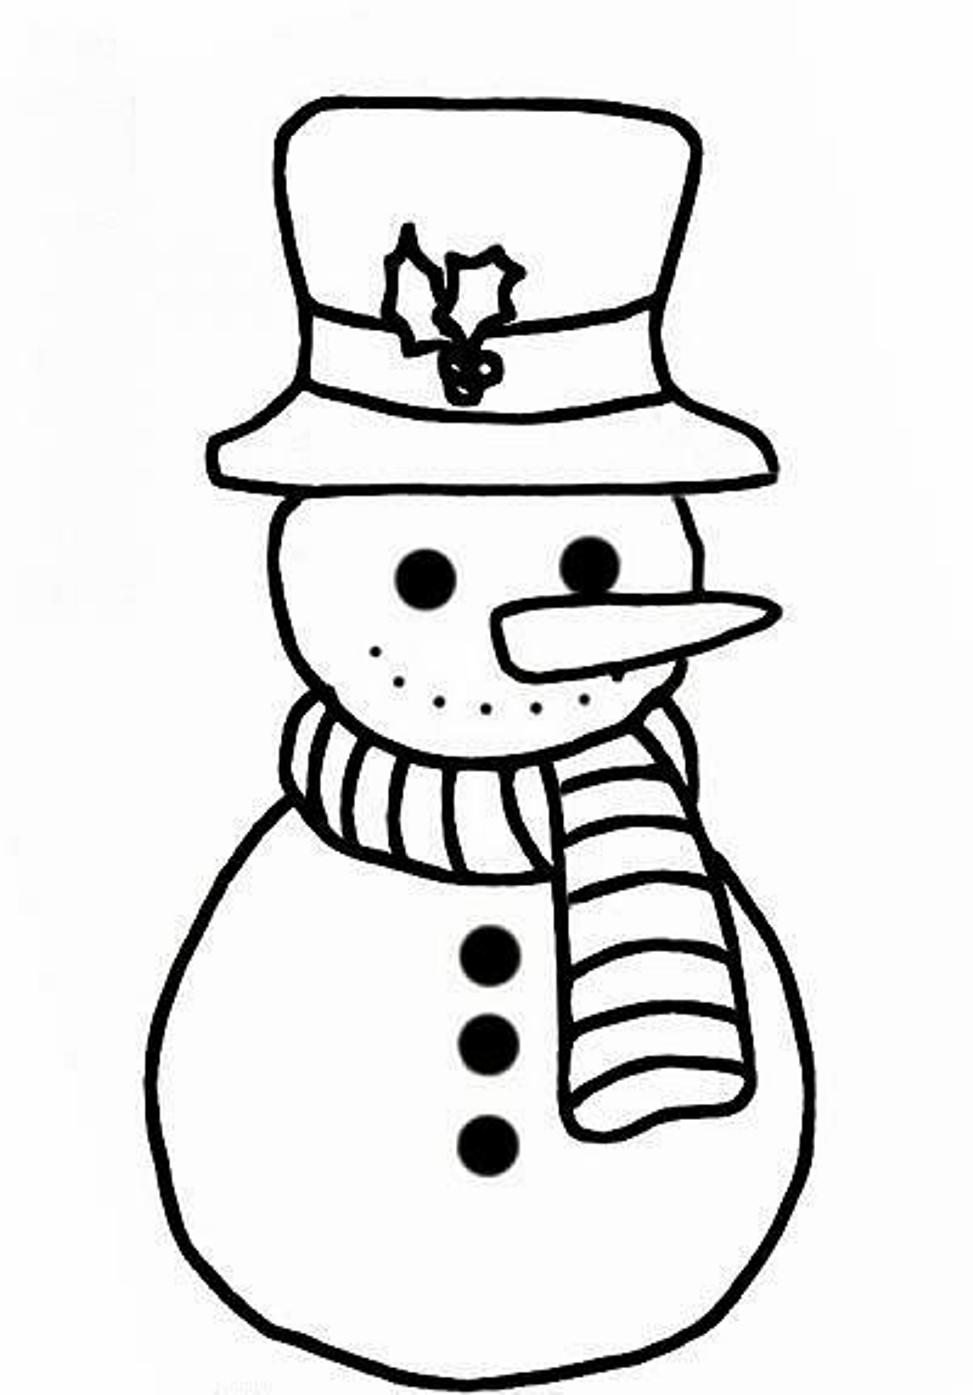 Snowman Drawing Images at GetDrawings.com | Free for ...